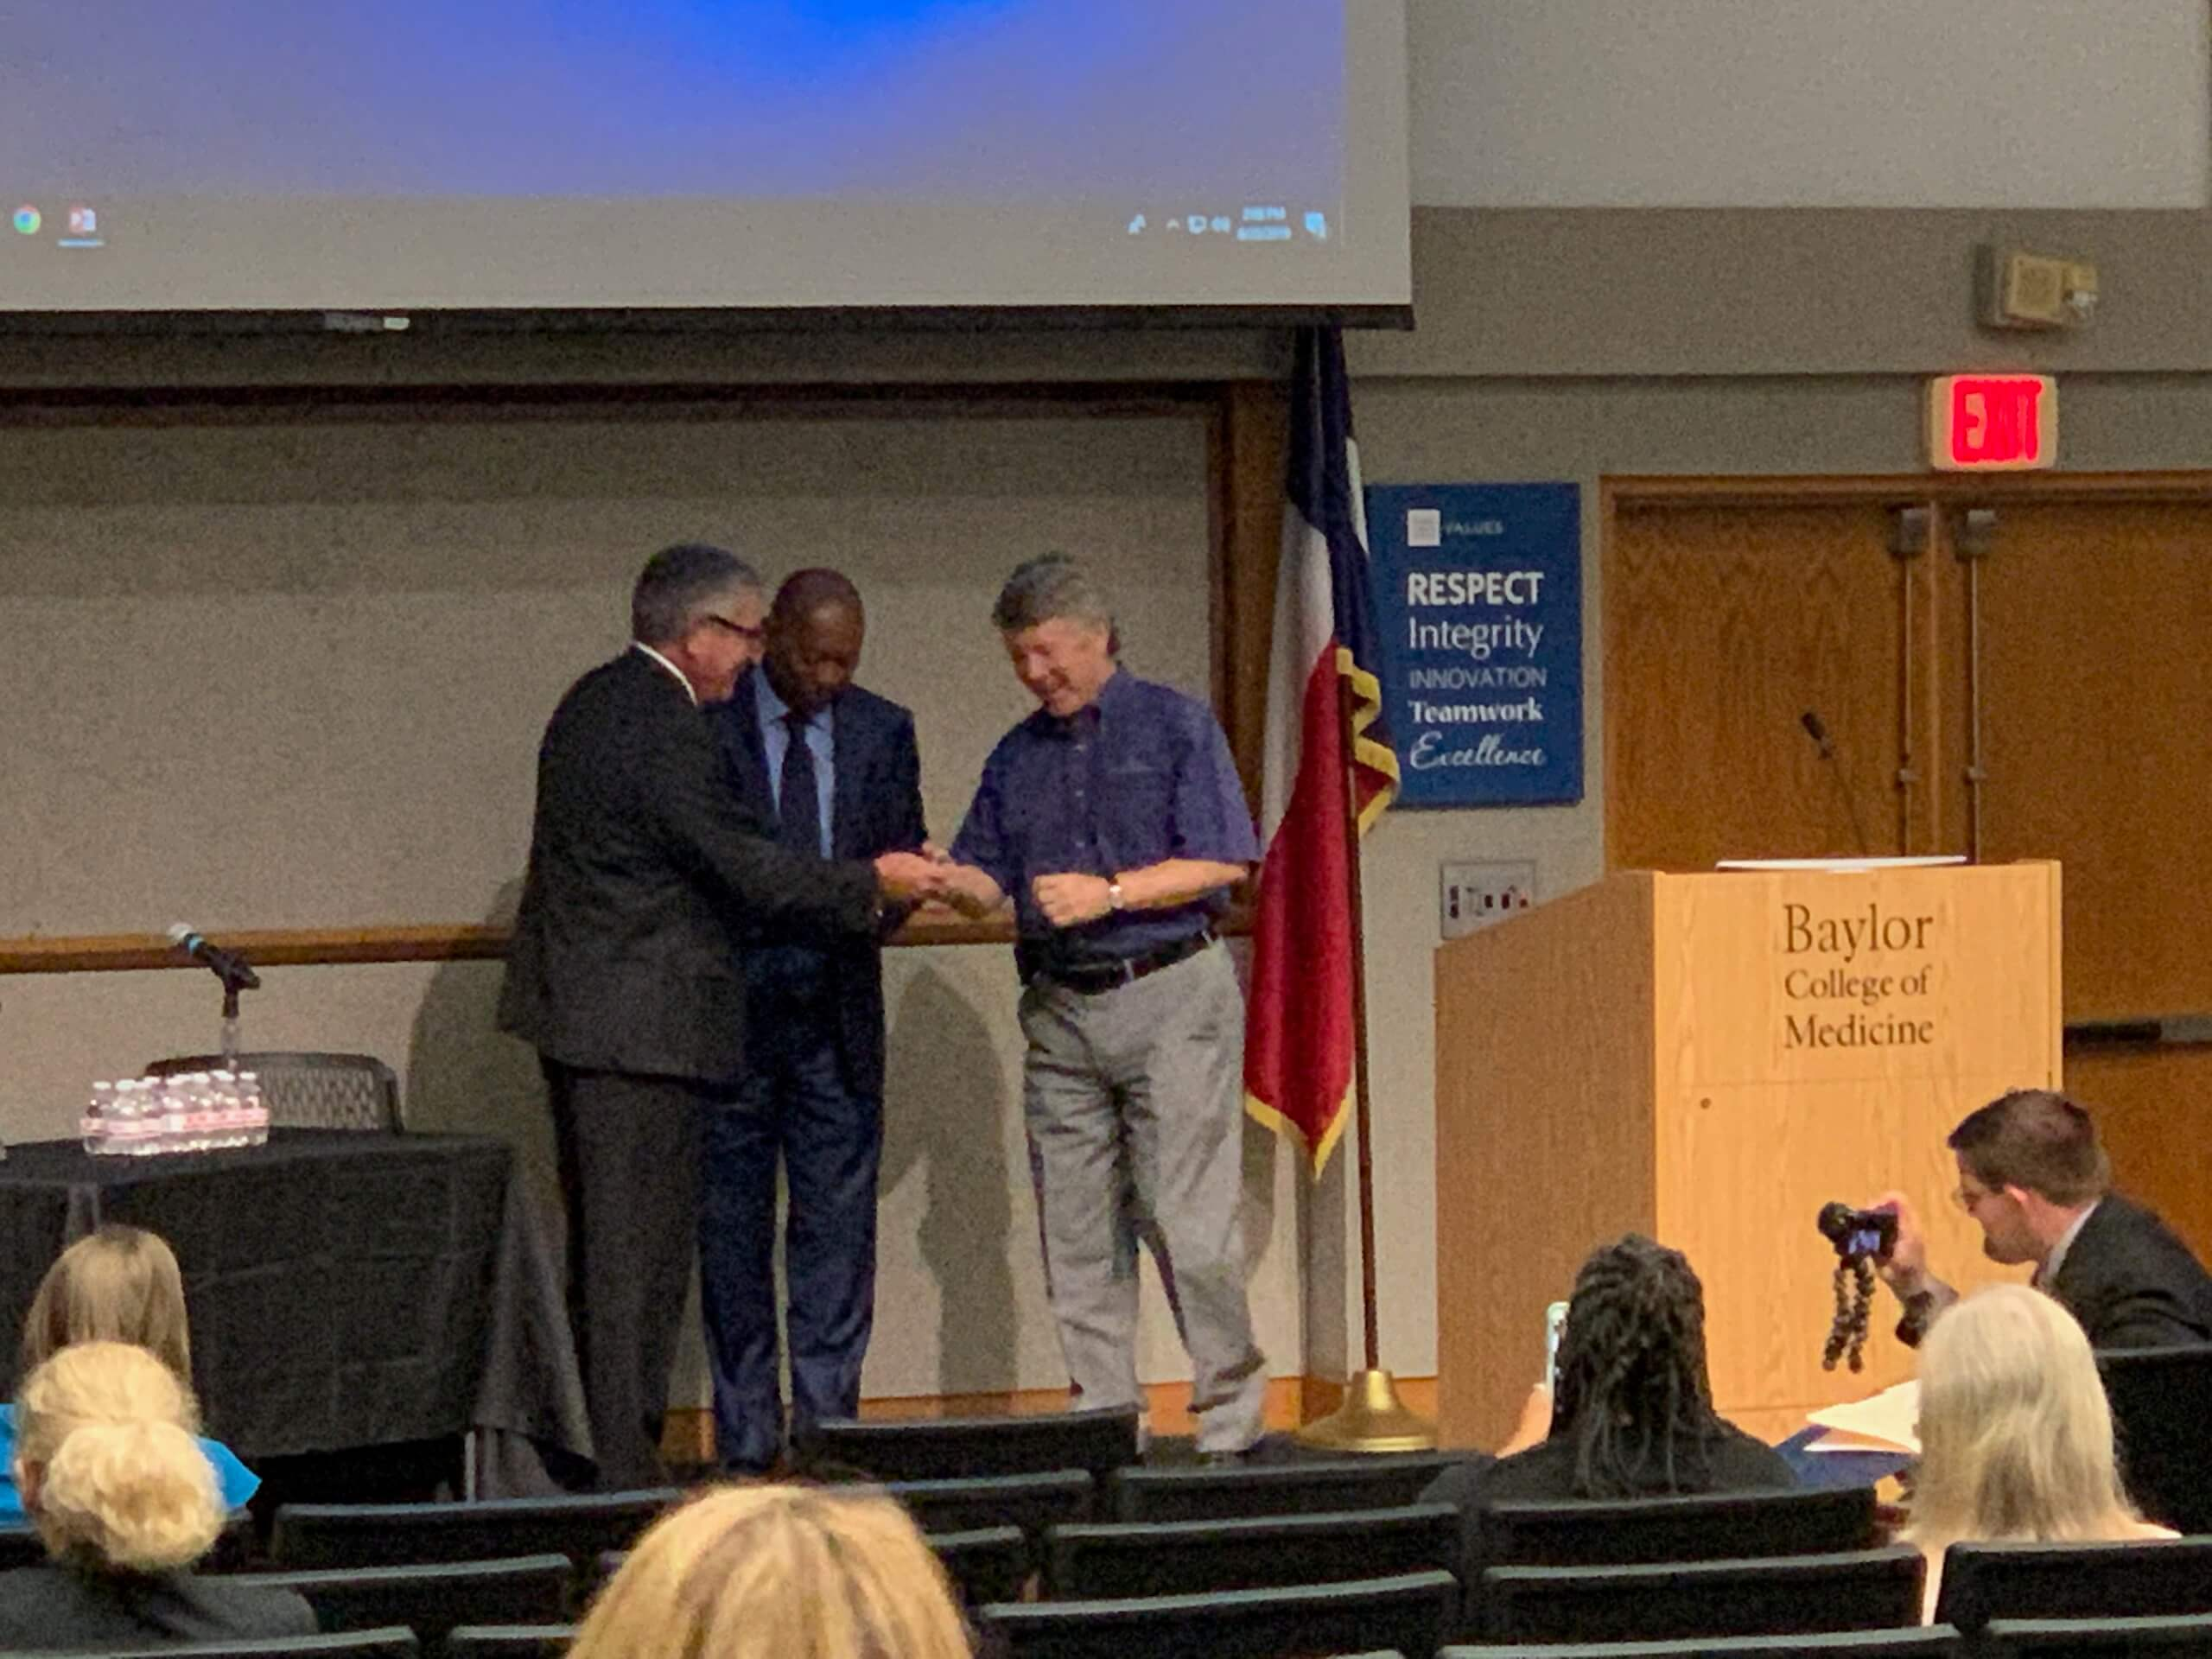 Baylor College of Medicine President Paul Klotman, M.D., recognized Mayor Sylvester Turner, center, and former Harris County Judge Ed Emmett, right, for their leadership before, during and after Hurricane Harvey.